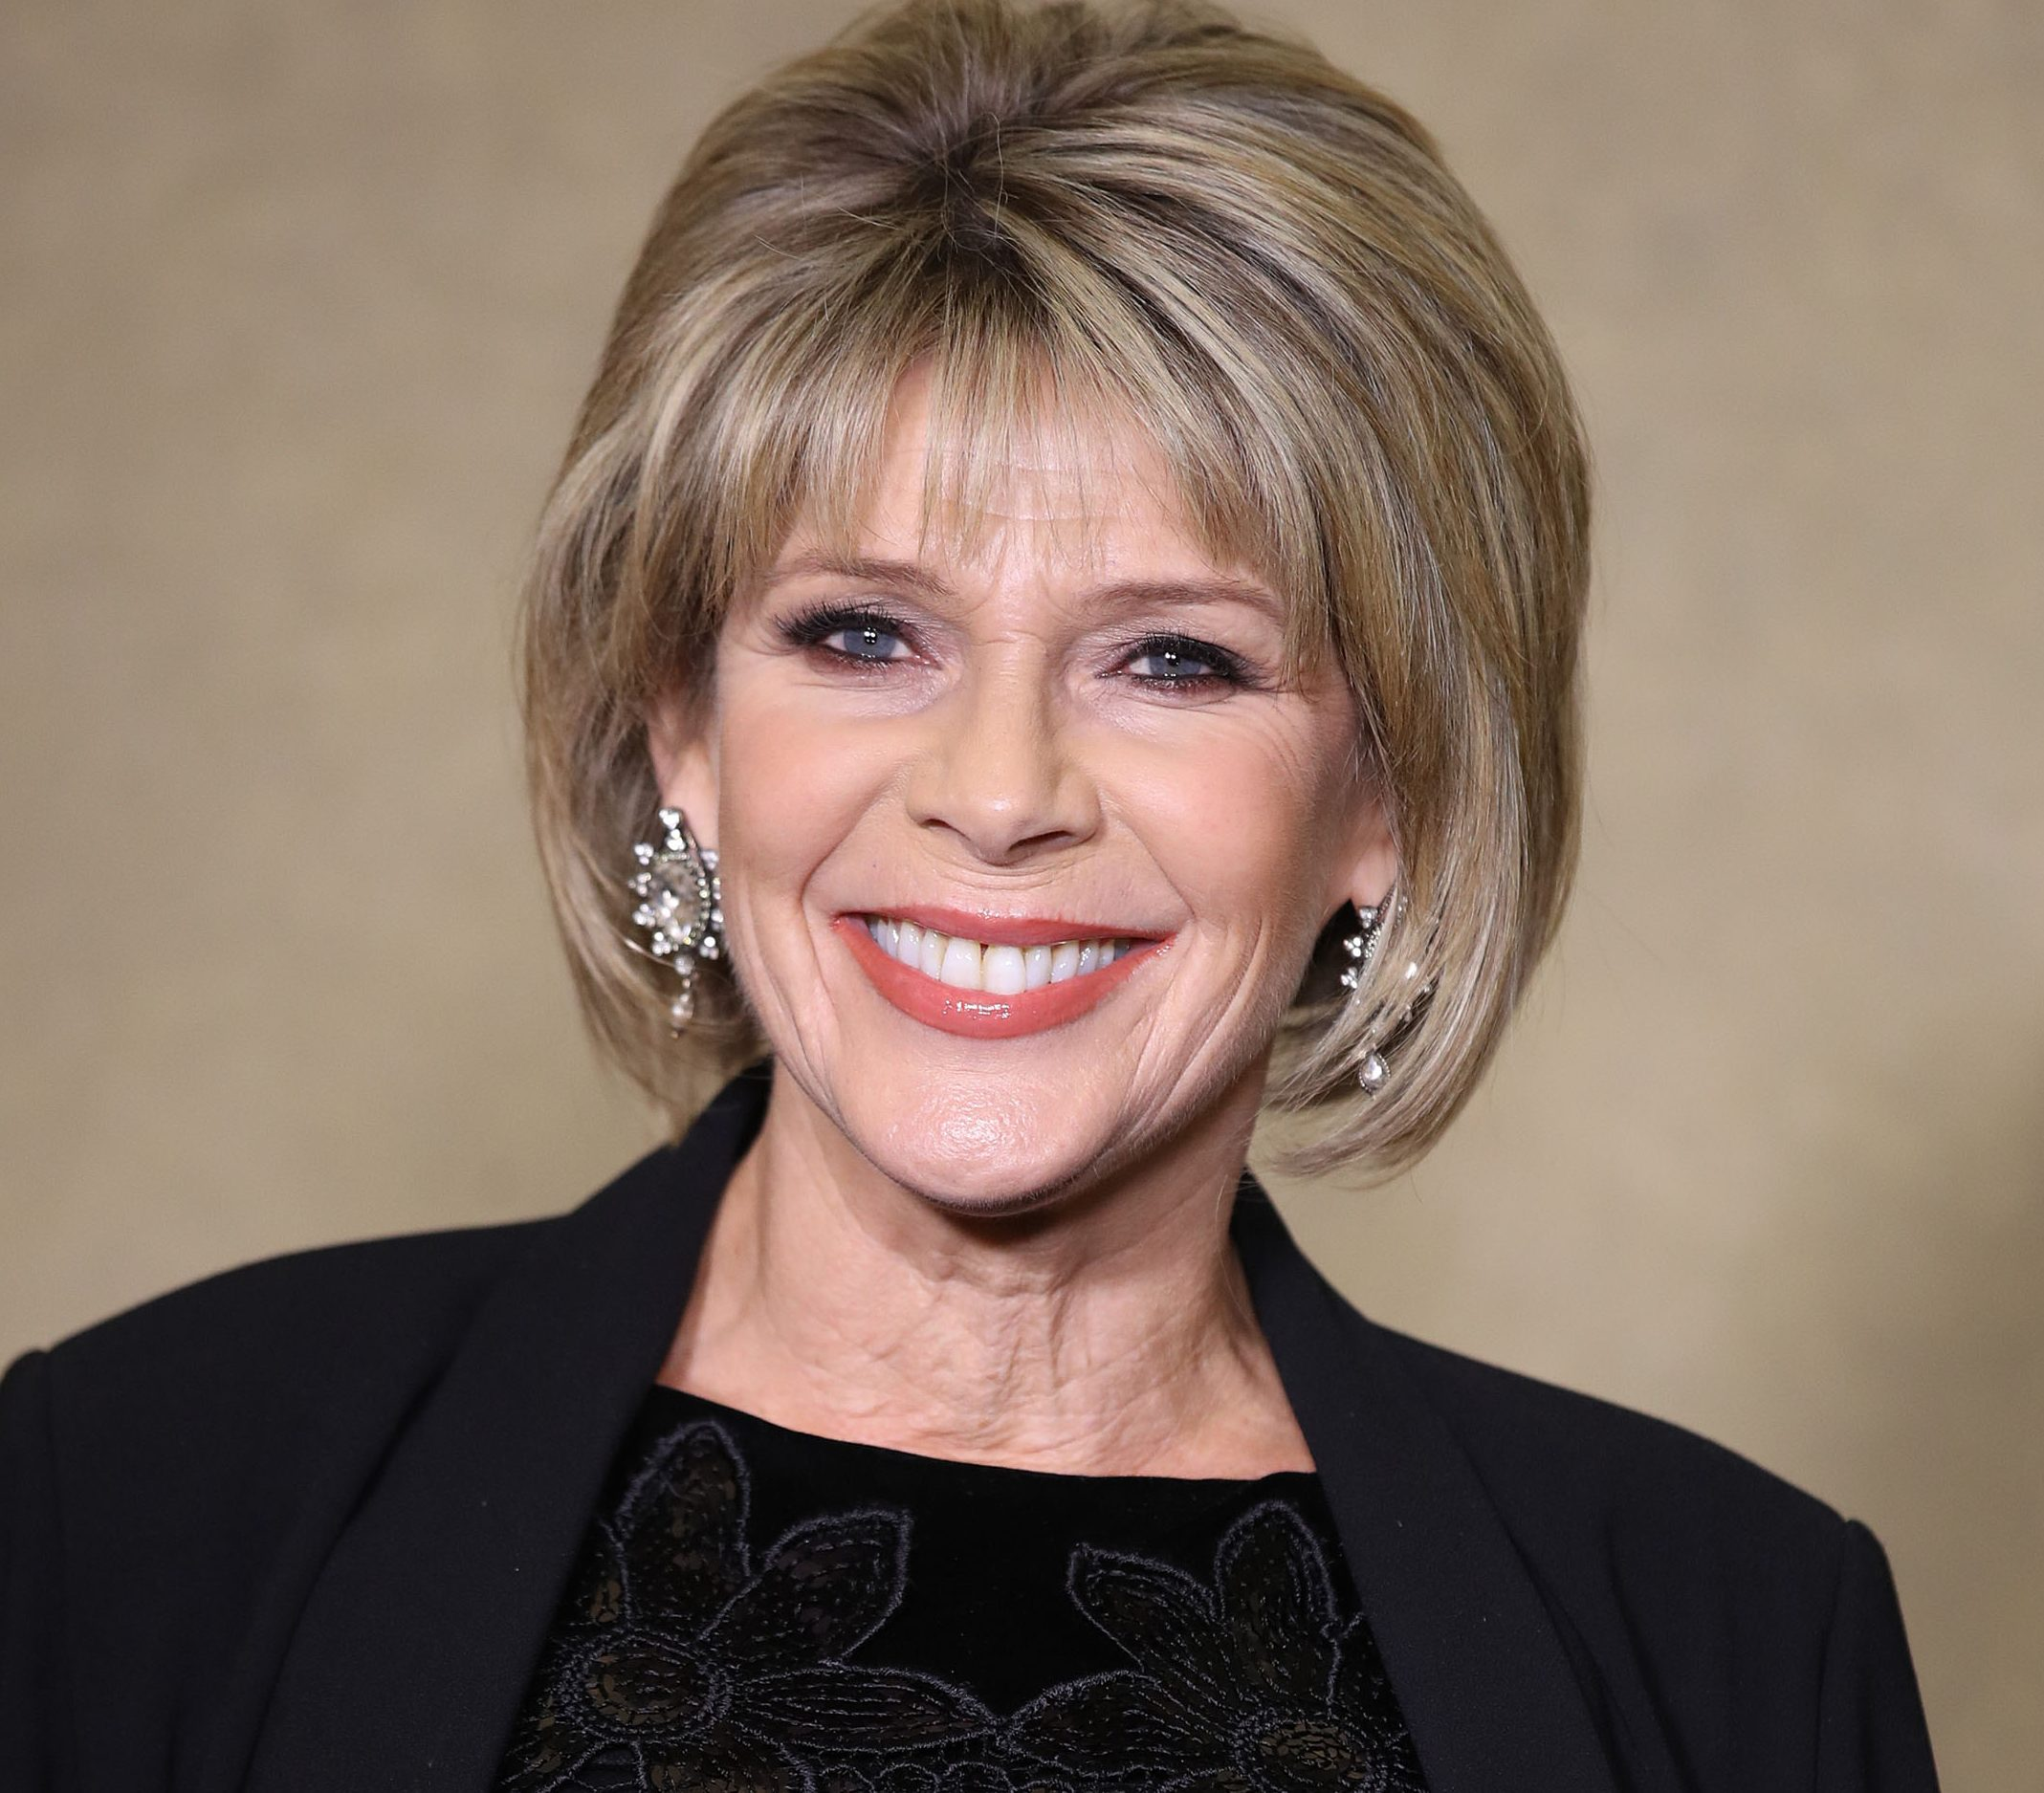 'You look magic in them!' Fans go wild for Ruth Langsford's bold M&S leather look